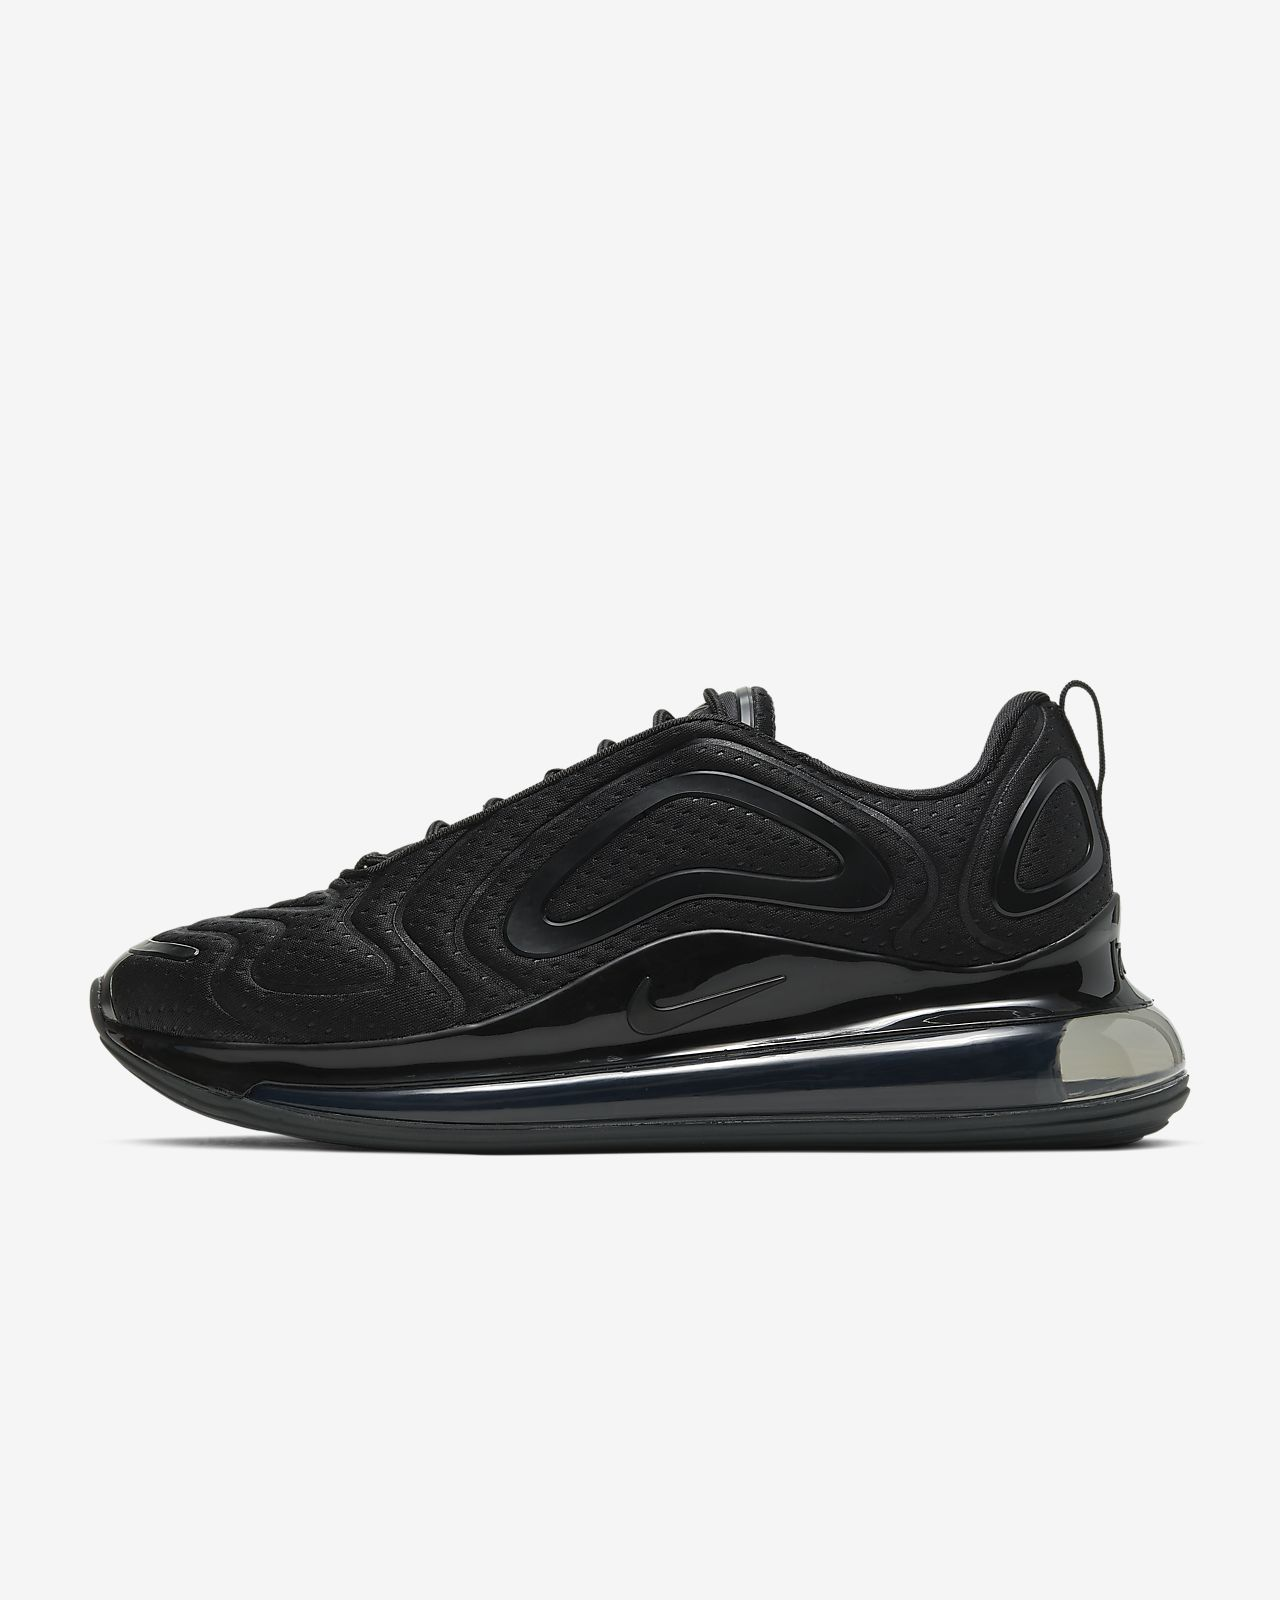 Nike Air Max 720 Goes Full Gold | Nike air, Air max, Nike